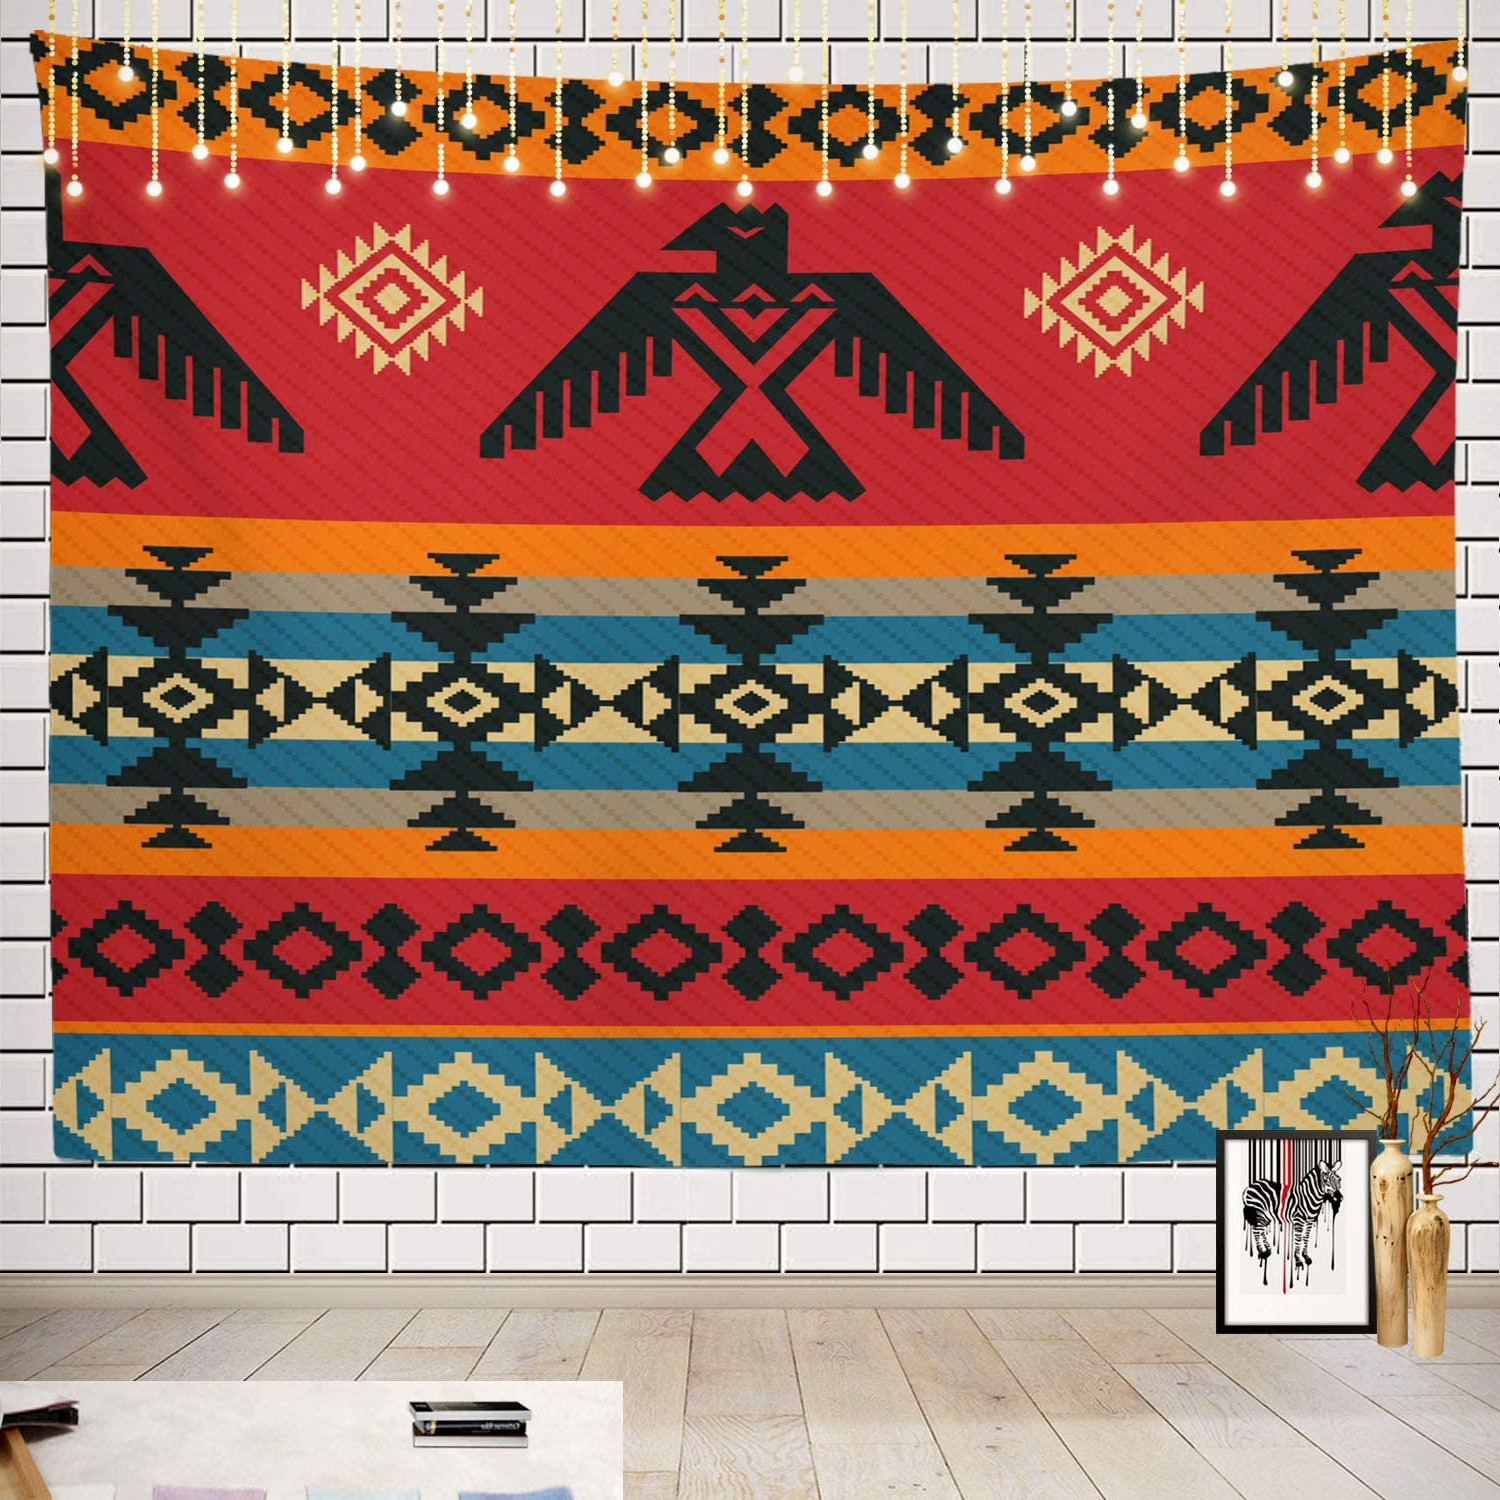 Popular Batmerry Ethnic Geometric Tribal Tapestry, Native American Navajo Tribal Design Print Picnic Mat Hippie Trippy Tapestry Wall Art Decor For Bedroom With Regard To Blended Fabric Southwestern Bohemian Wall Hangings (View 13 of 20)